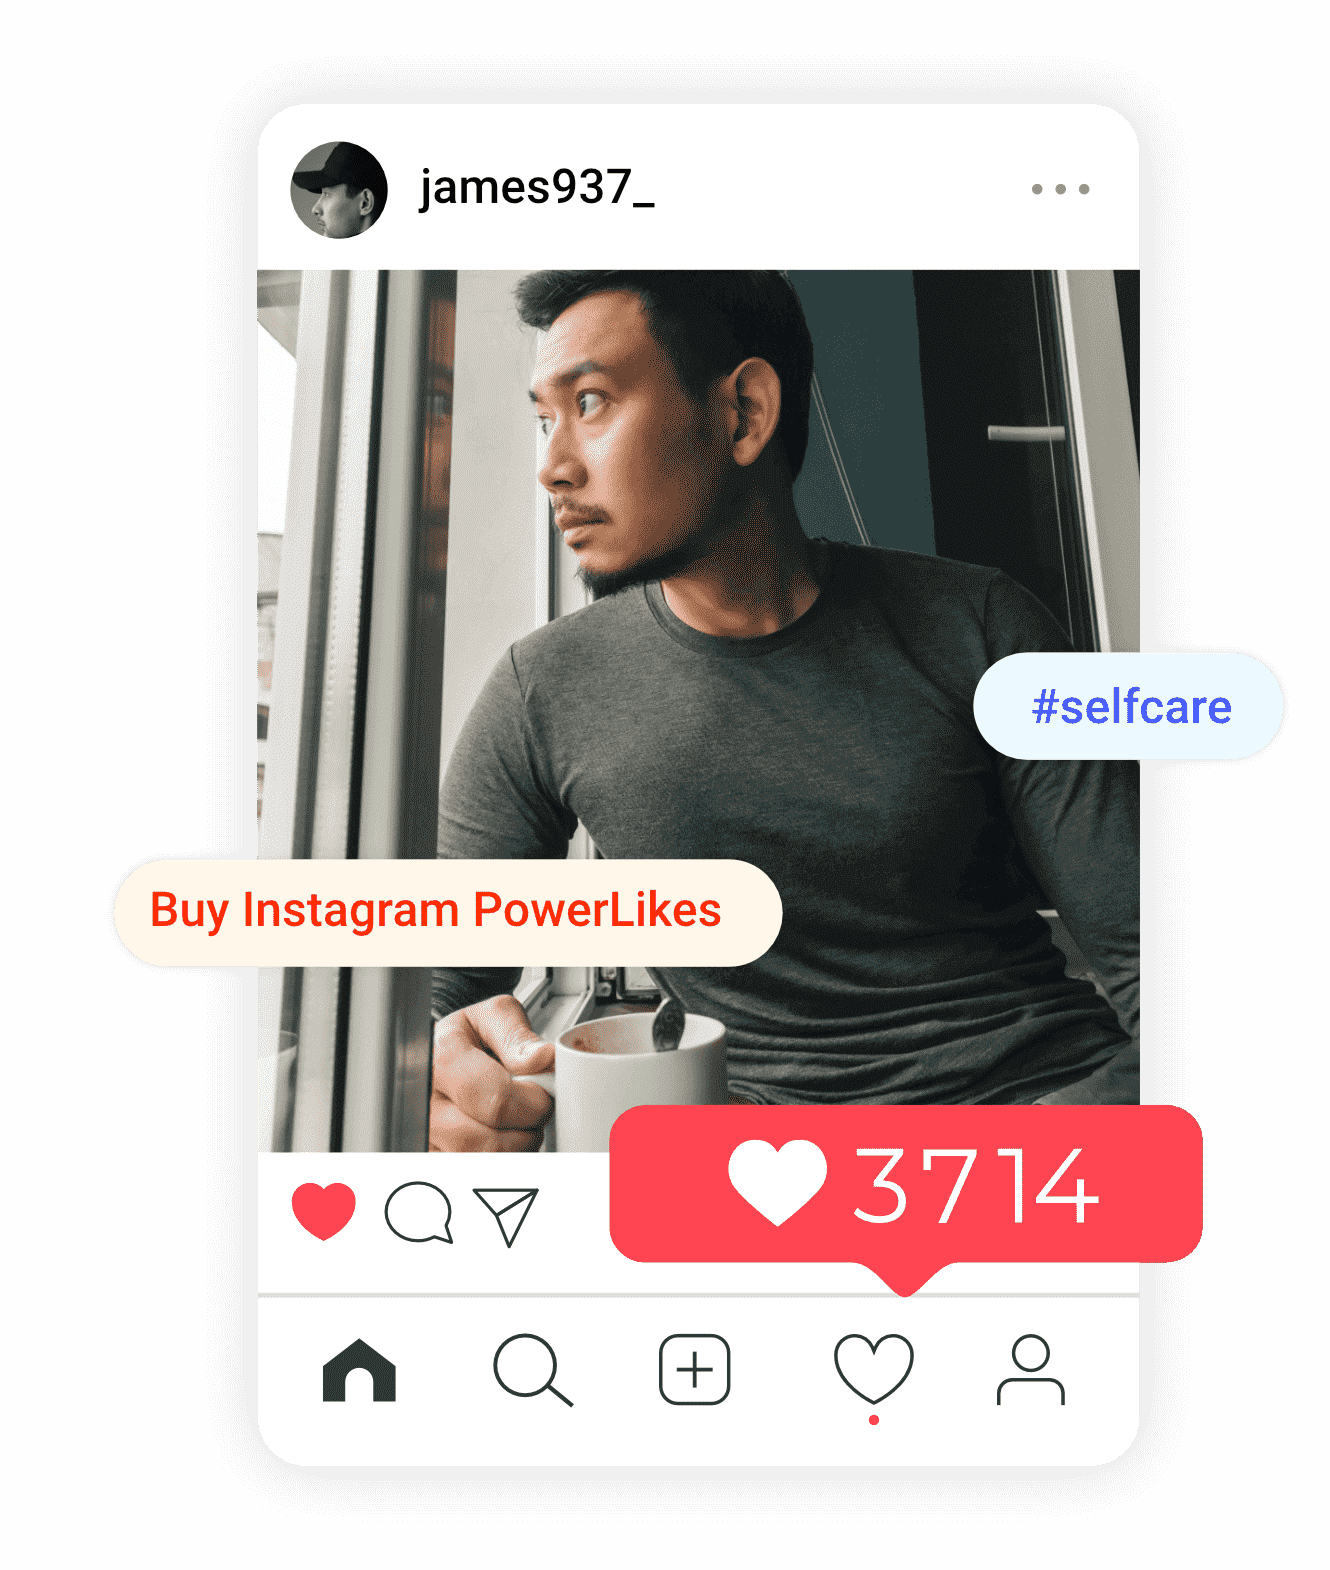 an image of james who is a recent customer of instagram powerlikes from buysellshoutouts.com